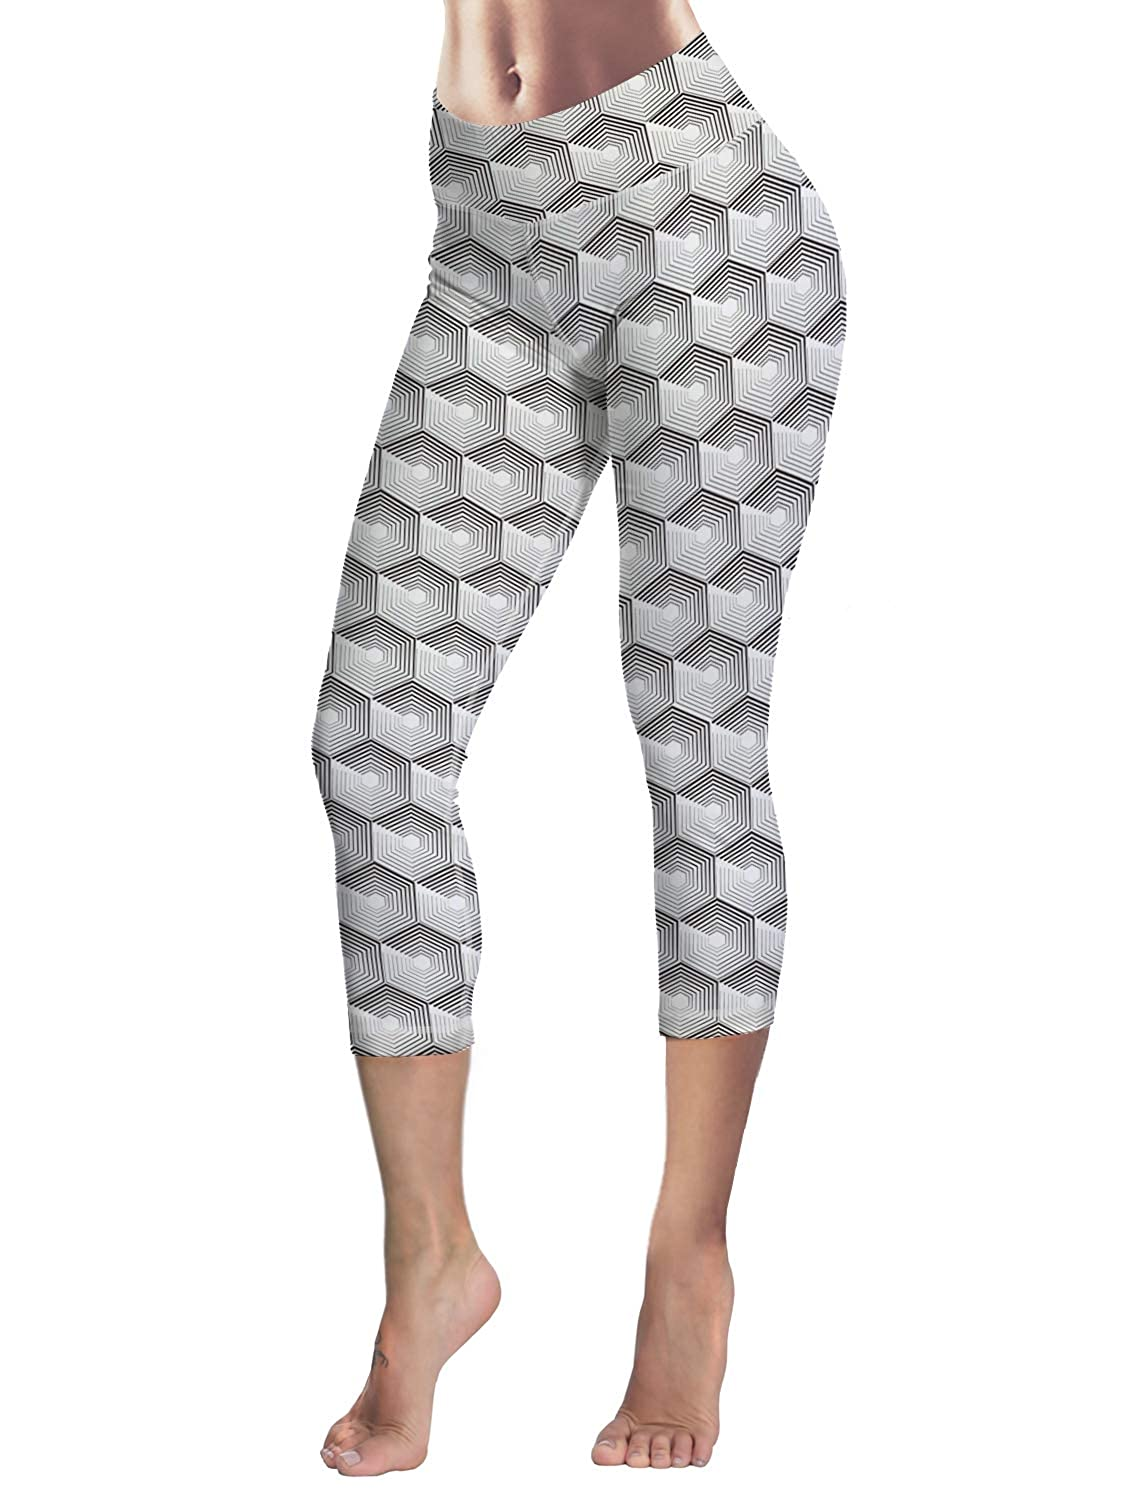 LEO BON Capri Tights Running Workout Leggings Cropped Pants Body Slimming Pants